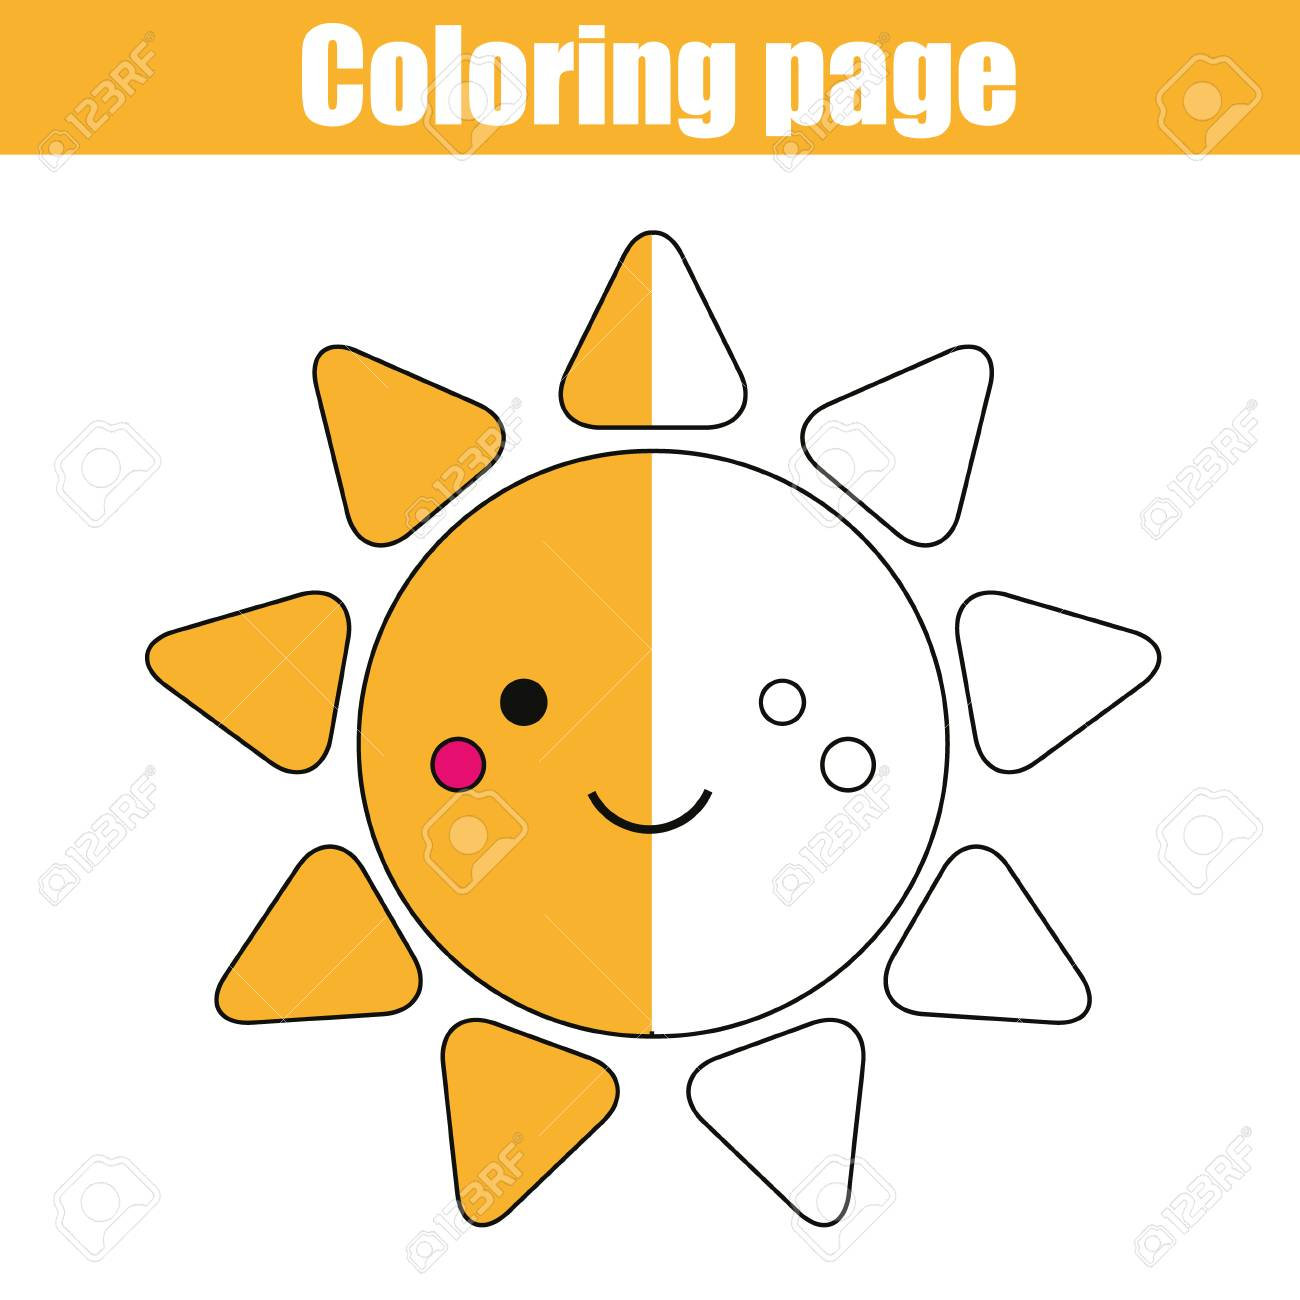 1300x1300 Coloring Page With Cute Smiling Sun Character. Color The Picture